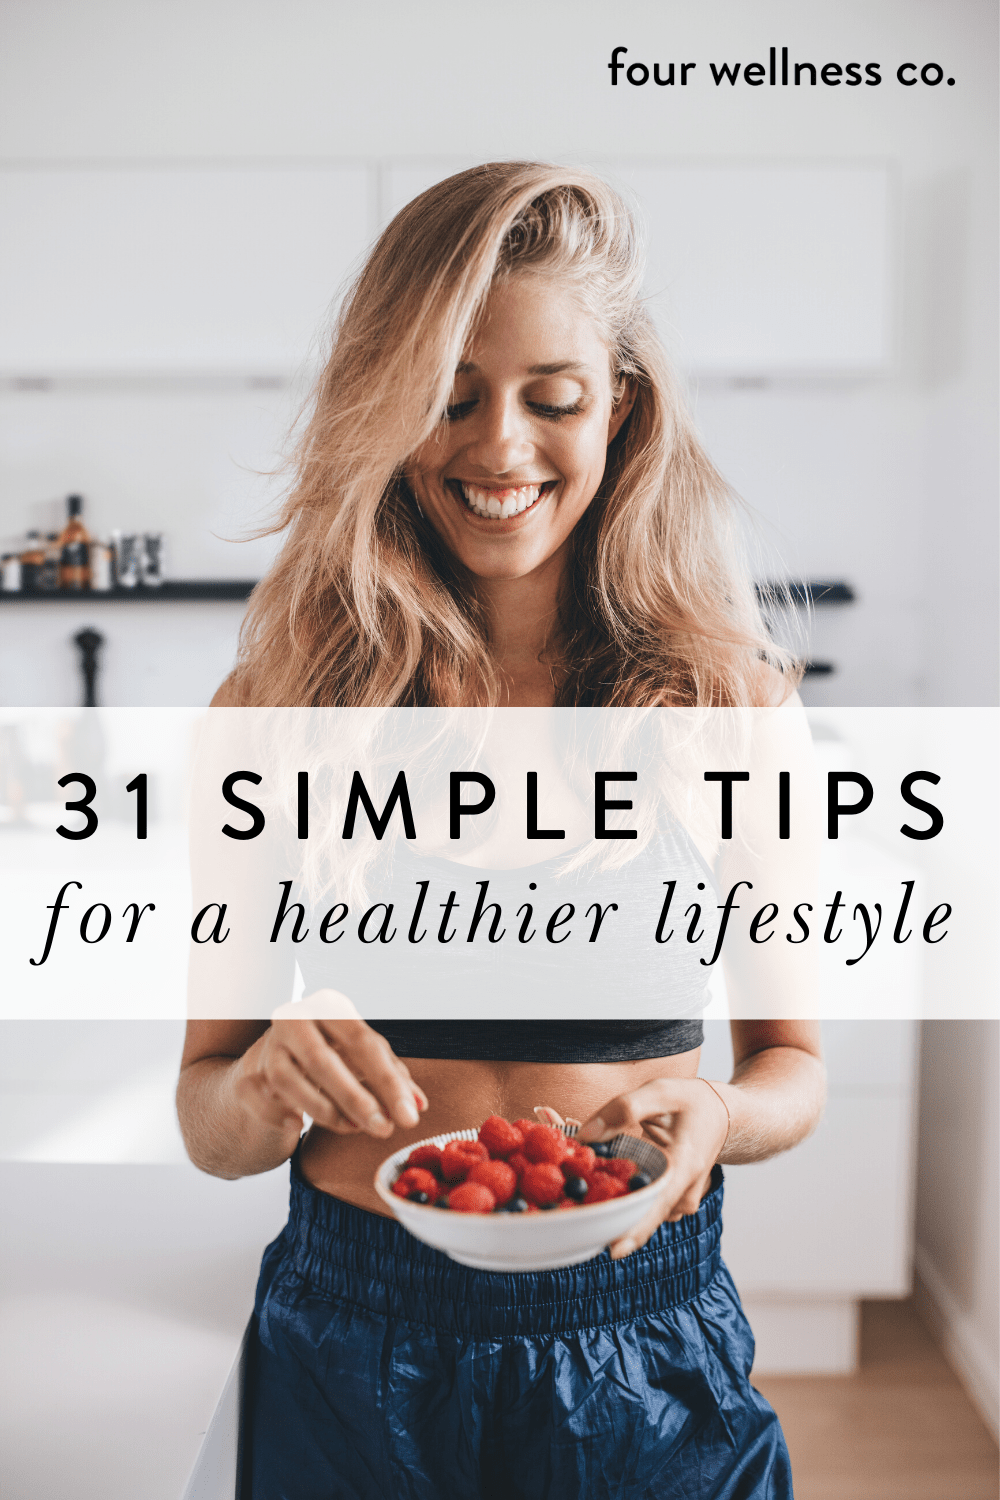 31 simple wellness tips for healthy & happy living // Simple, easy ways to live a healthy lifestyle: nutrition, fitness, mindset, relationship & nontoxic product tips & recommendations // Four Wellness Co. wellness blog, healthy lifestyle tips from an integrative nutrition health coach